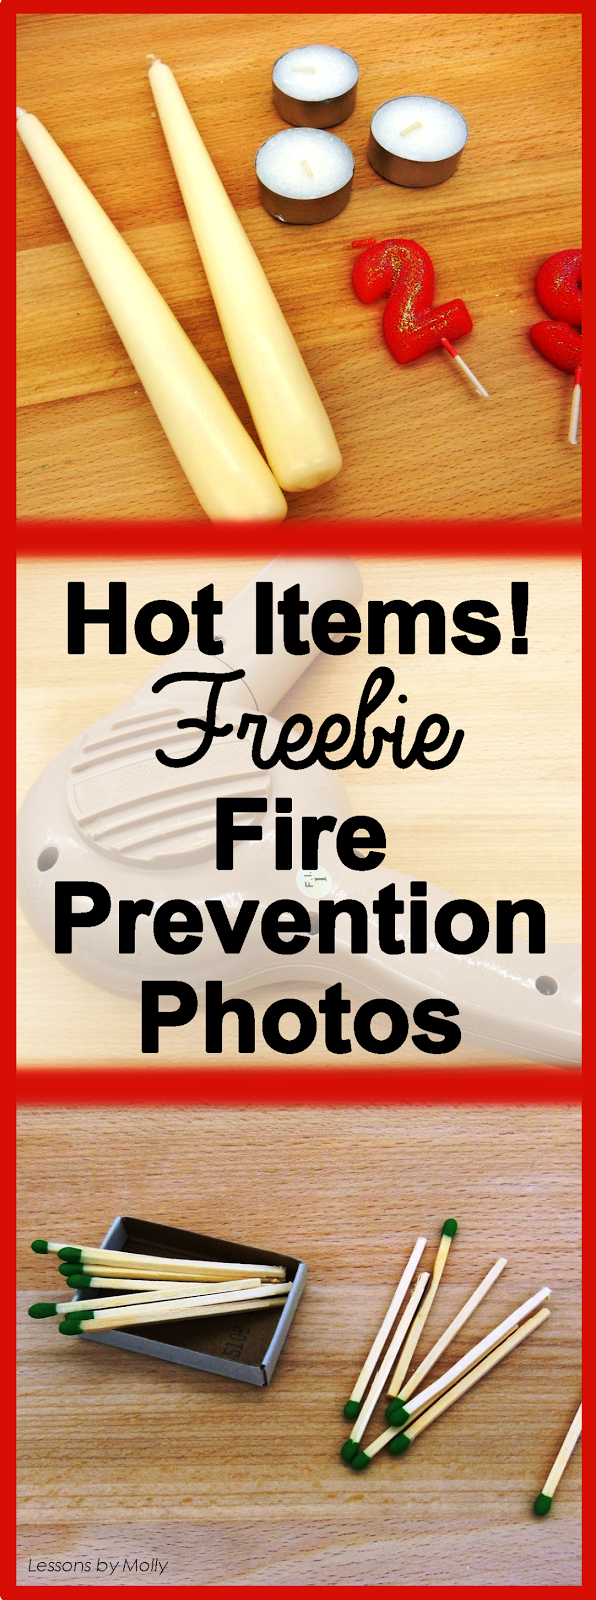 October is fire safety month!  This fire and burn prevention picture file includes ten photos of common household items that have the potential to be very dangerous for young children.  The photos include candles, matches, lighters, burner, hot tea, hot soup, an iron, light bulb, hair dryer, and hair iron.   Enjoy using these fire prevention images with your class when you are introducing a fire safety unit.  You may use the photos to create educational materials for individual classroom use.